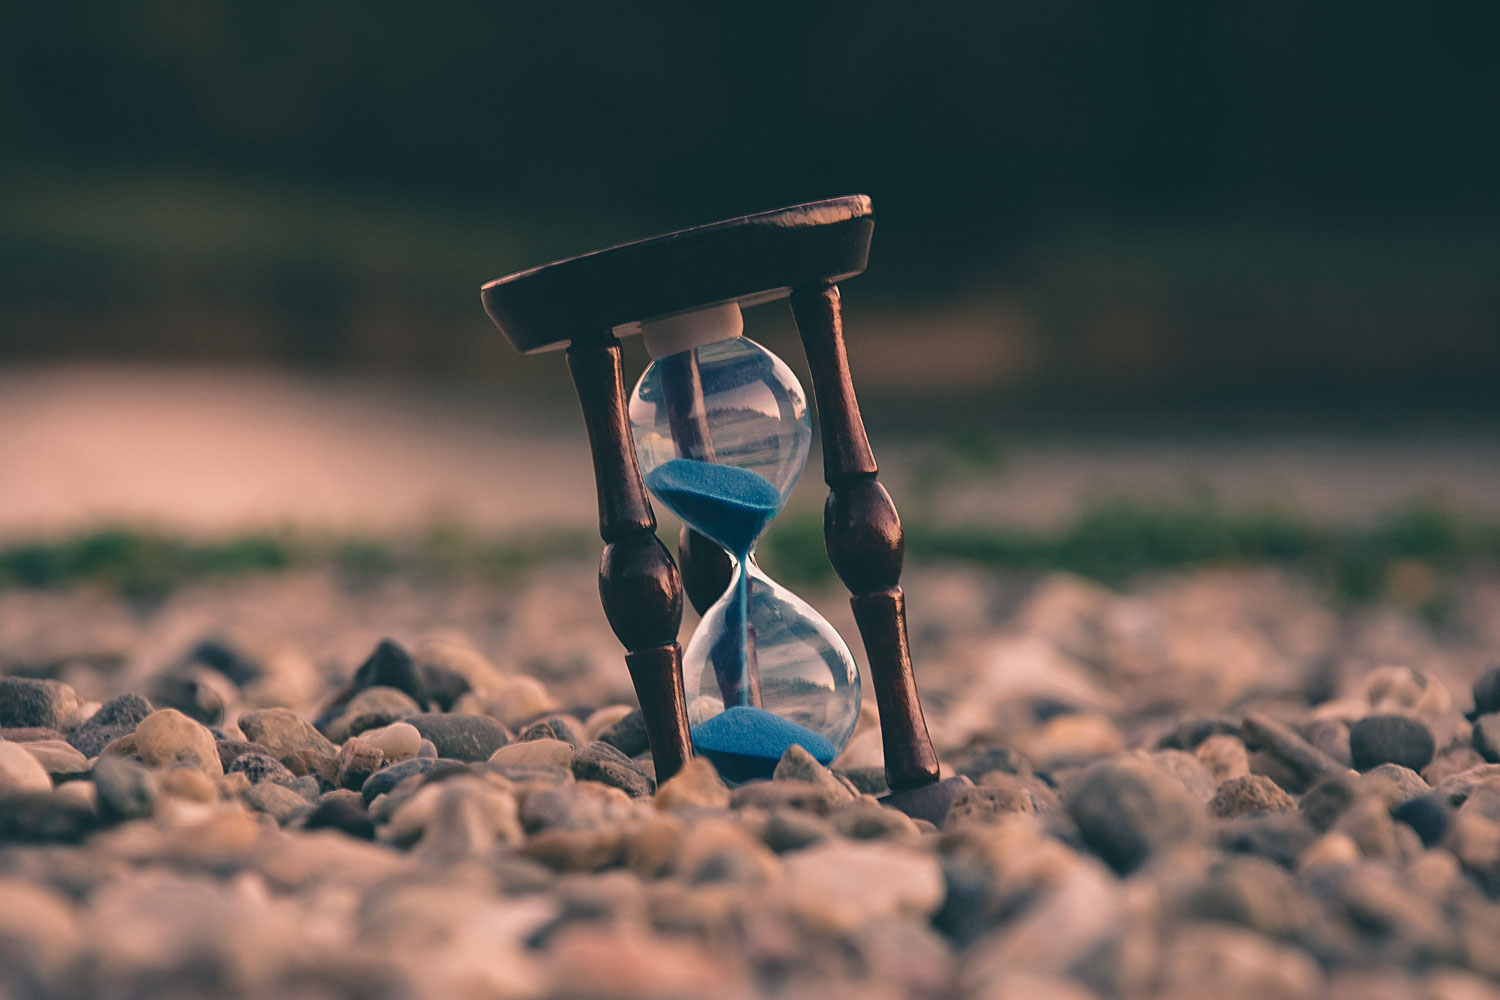 Photo of an hourglass on the beach.